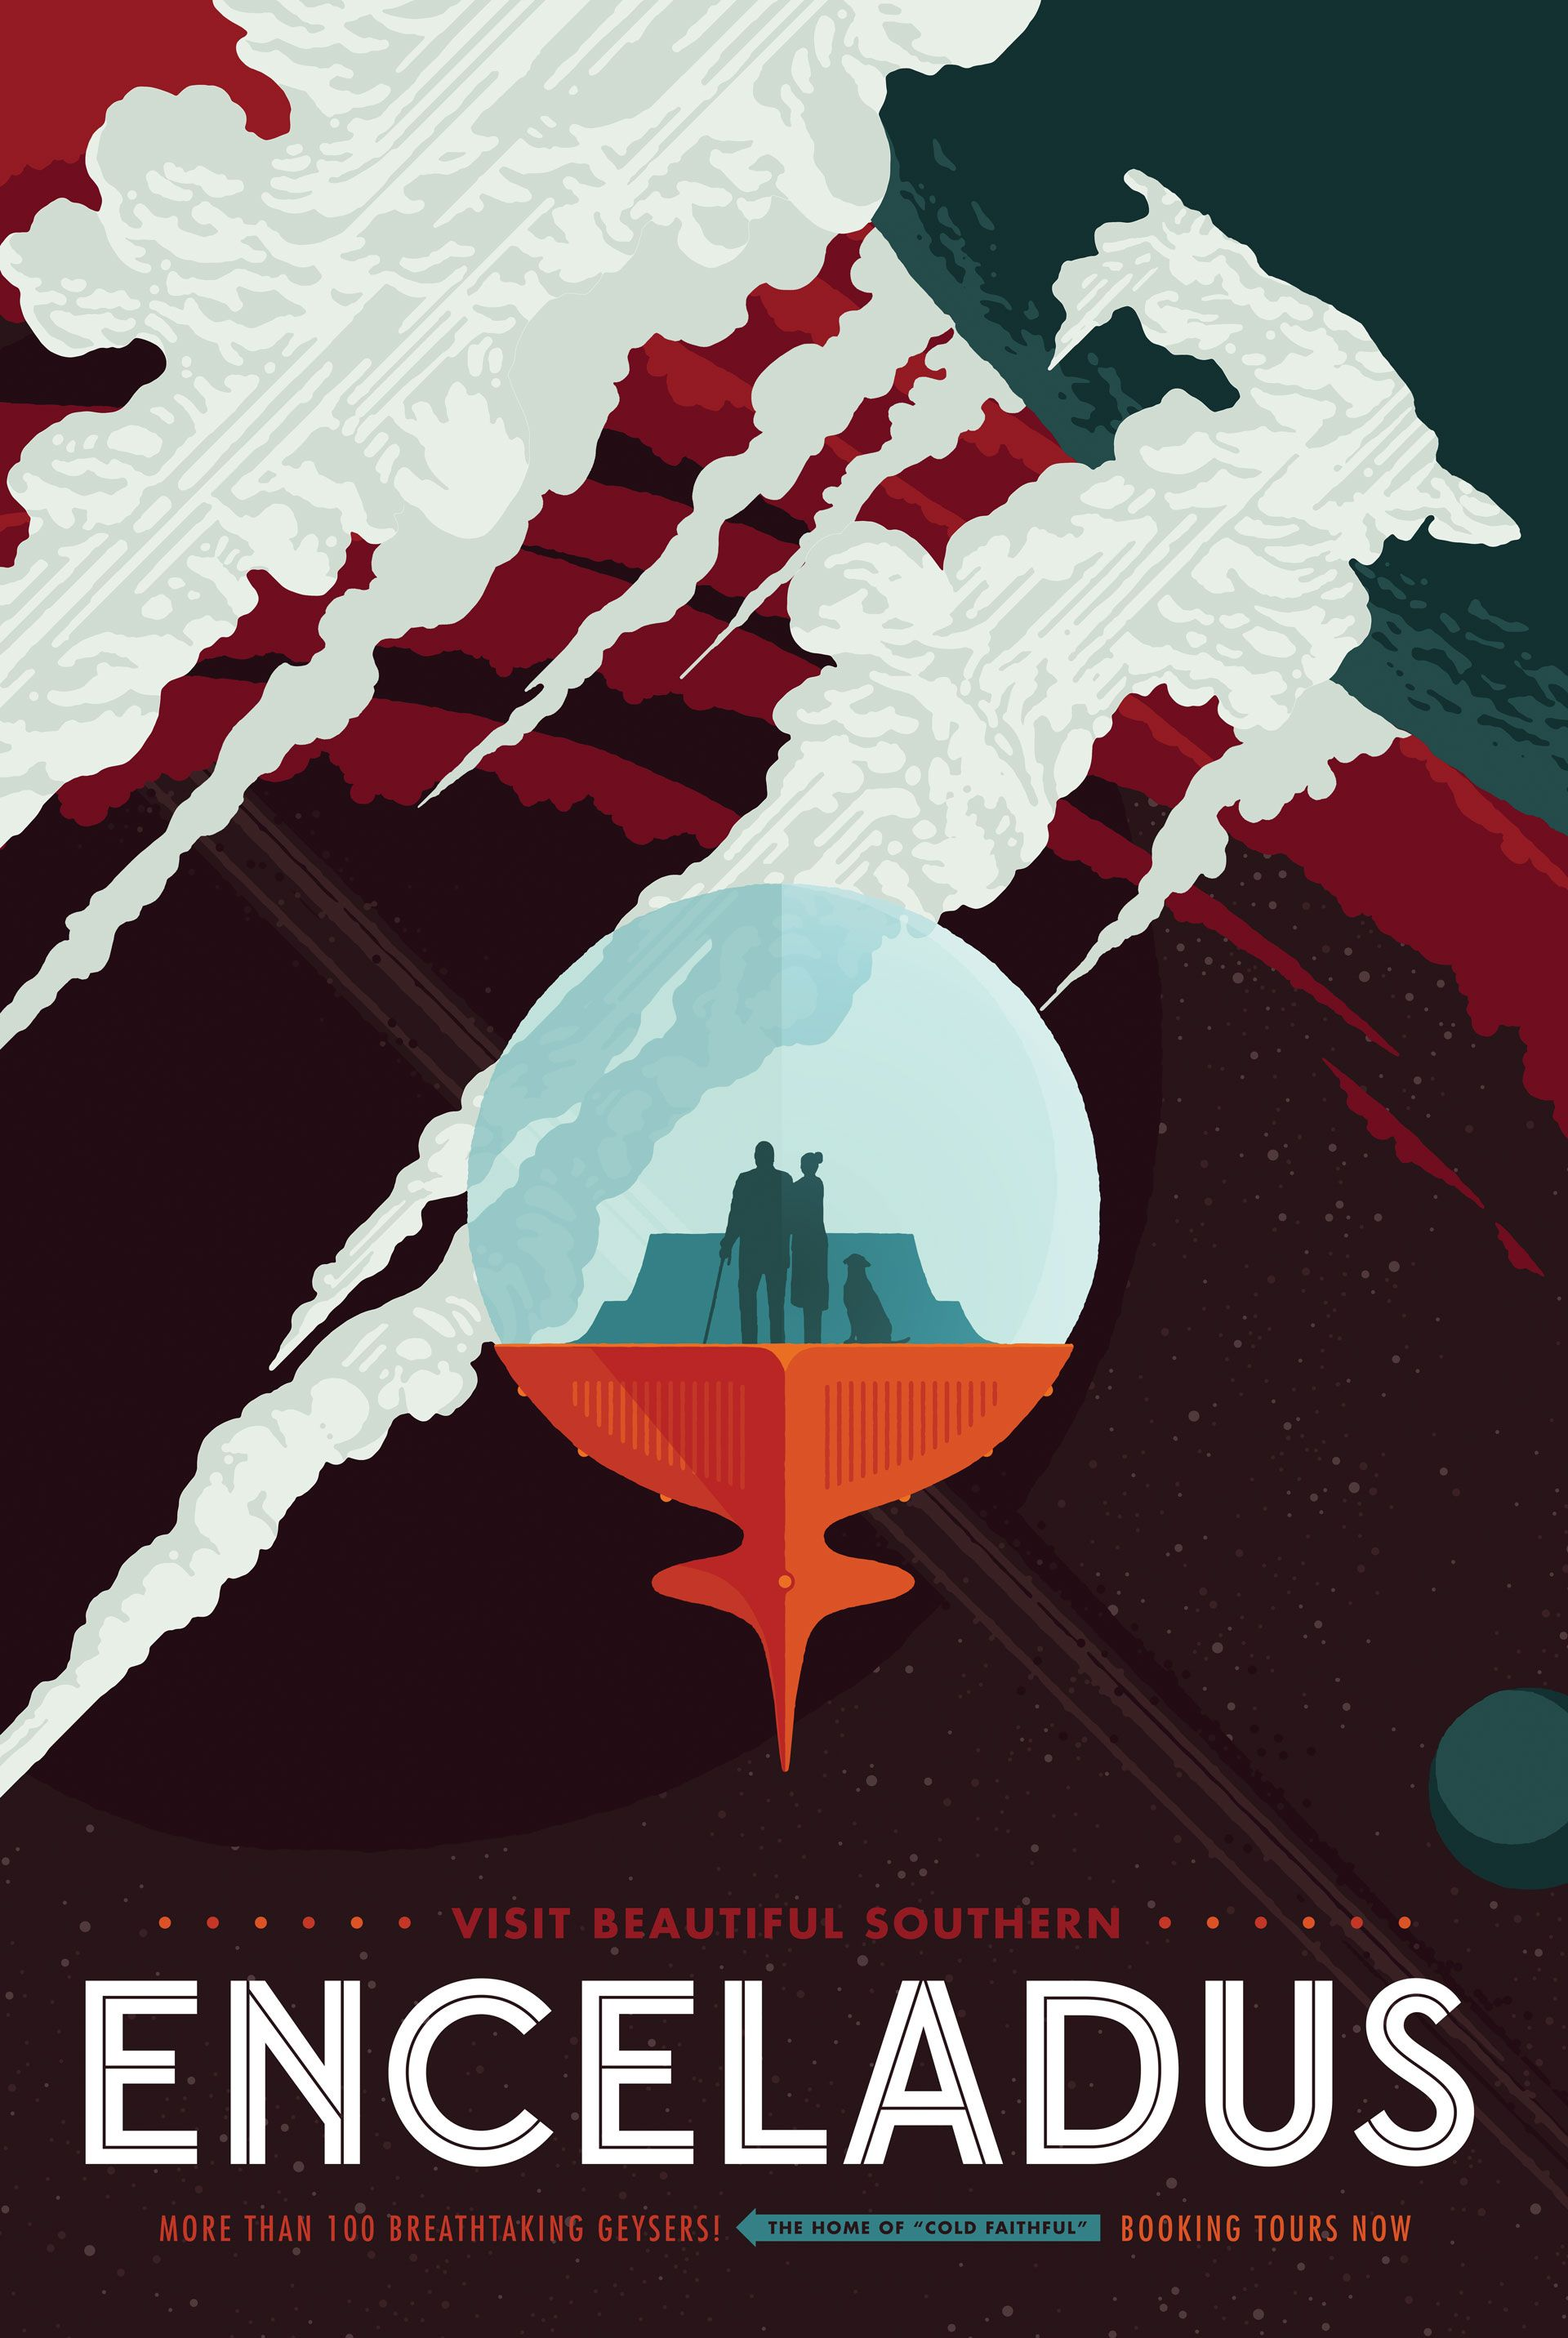 Nasa Released These Dope Ass Retro Style Posters - Vintage Posters,